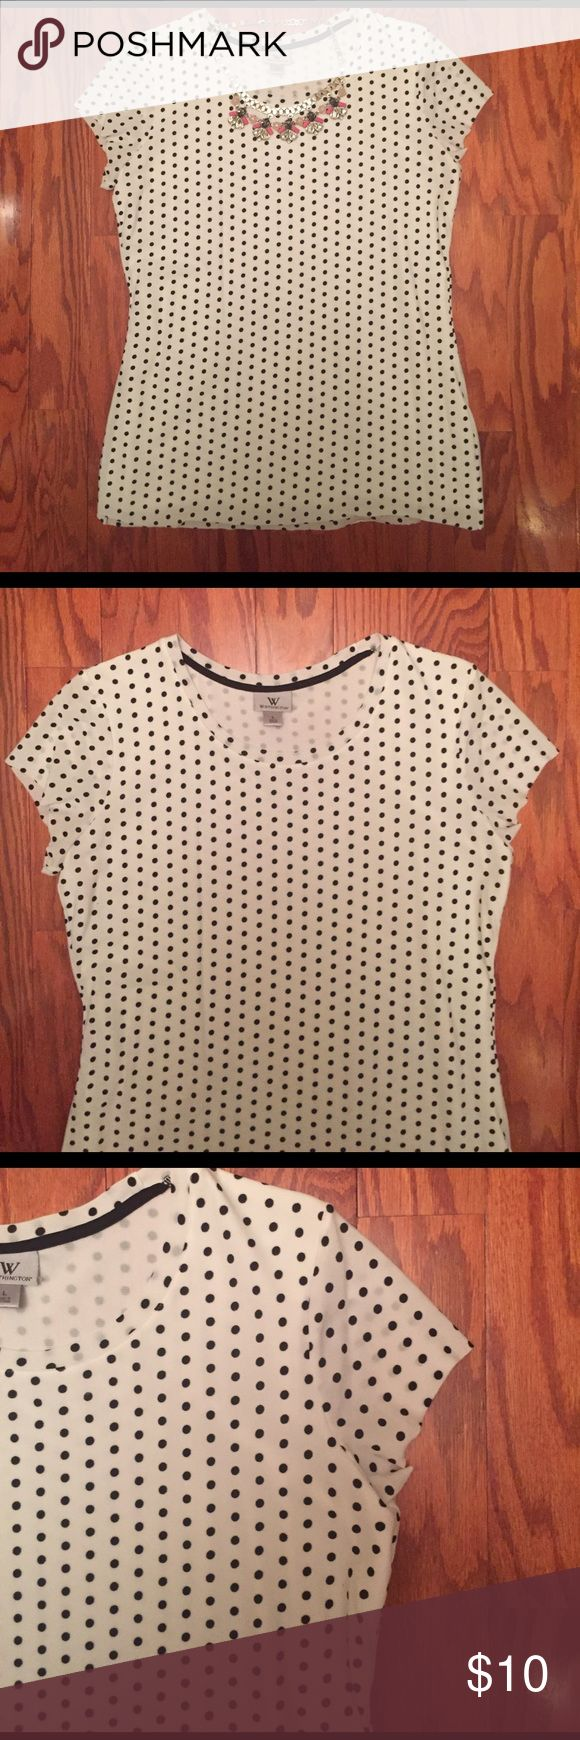 Polka Dot Short Sleeved Dress Top Polka Dot Short Sleeved Dress Top, size Large. EUC, no rips or stains. What doesn't go with black and white polka dots! A must for every closet 💁🏻 Worthington Tops